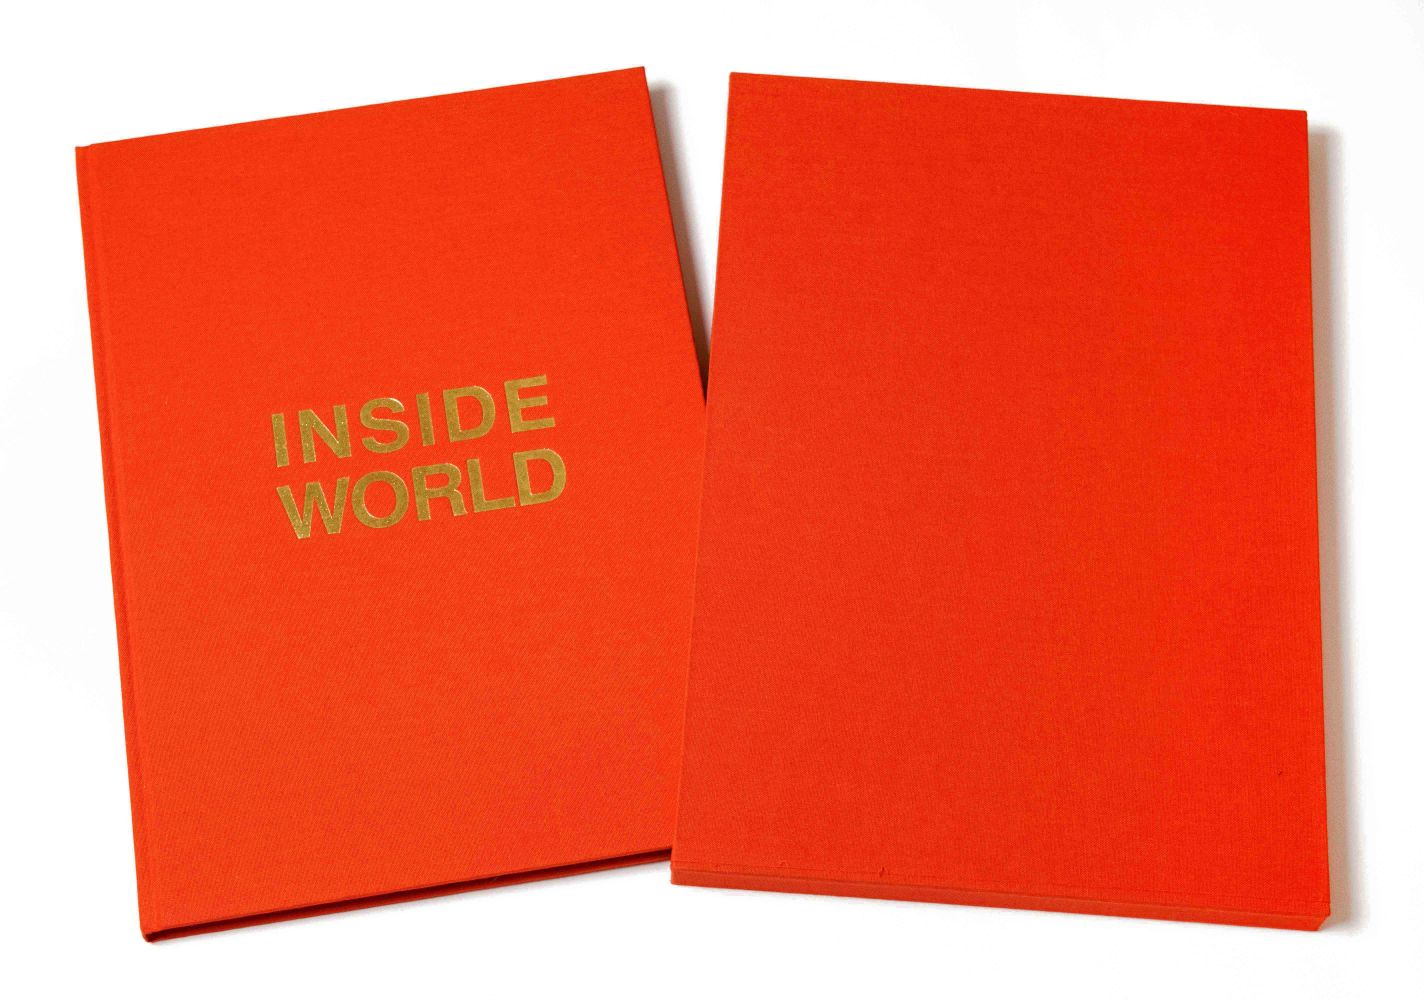 Richard Prince Inside World, 1989